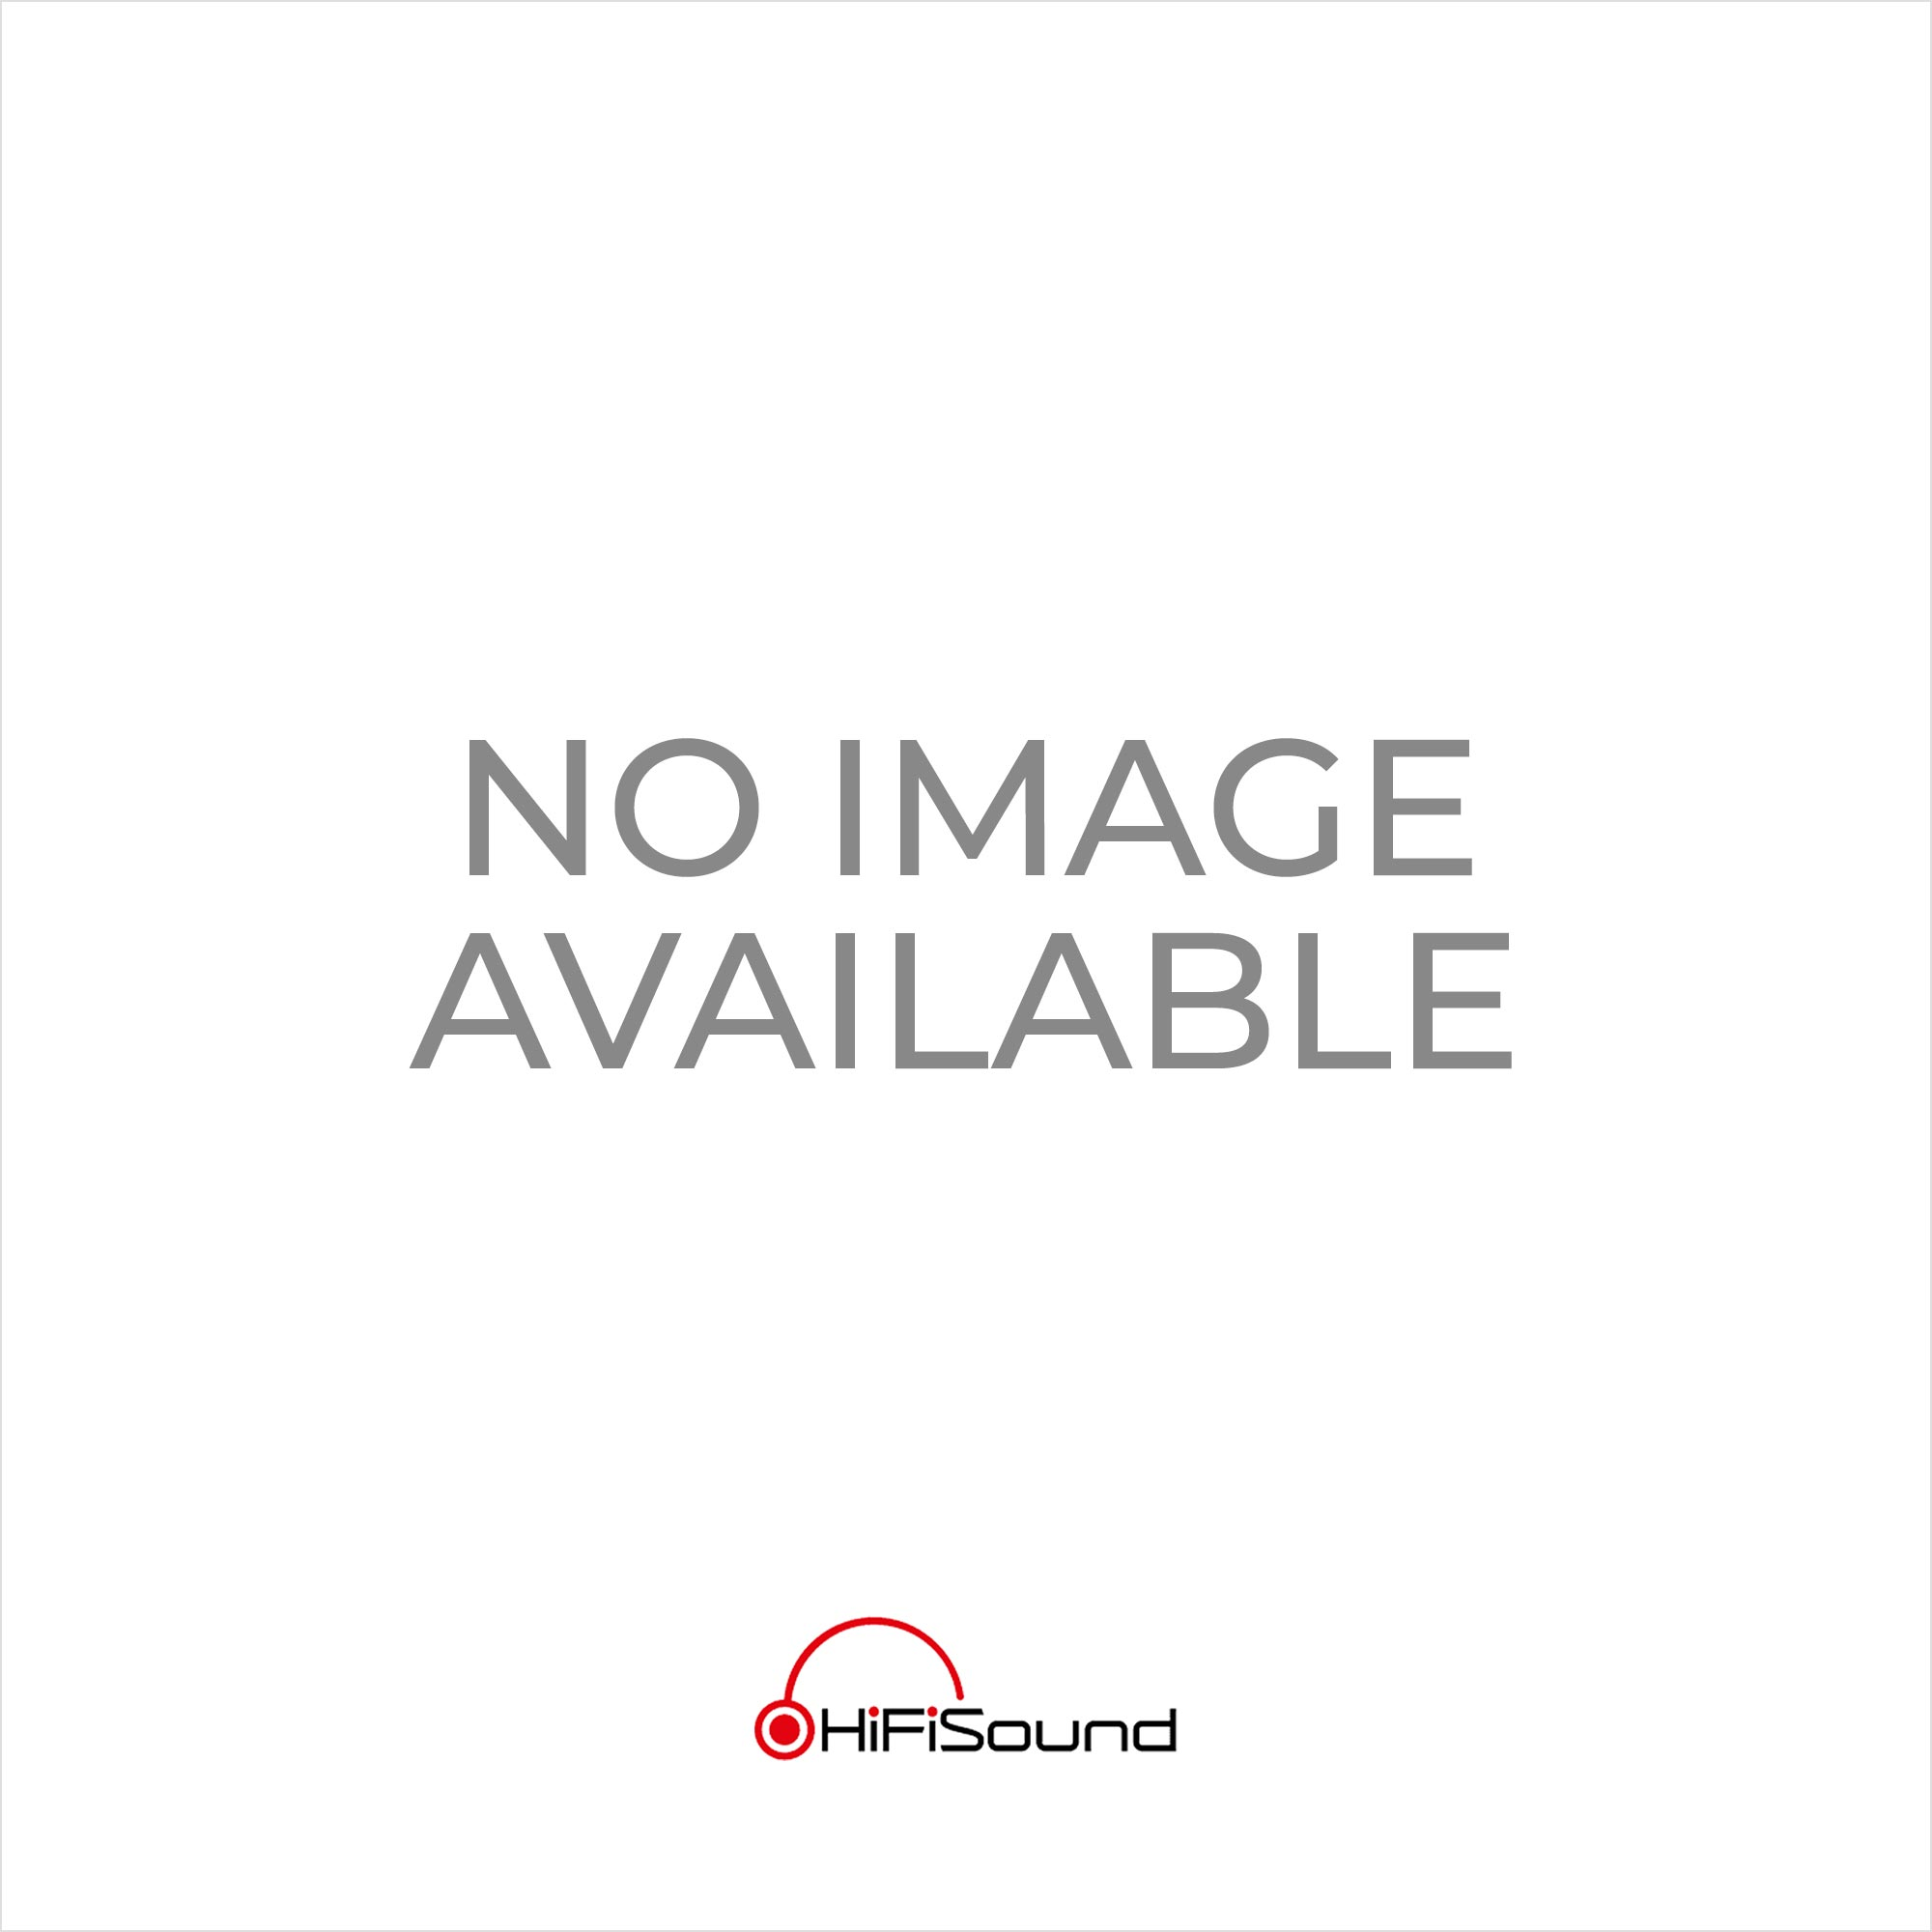 TEAC USB DAC/Headphone Amplifier